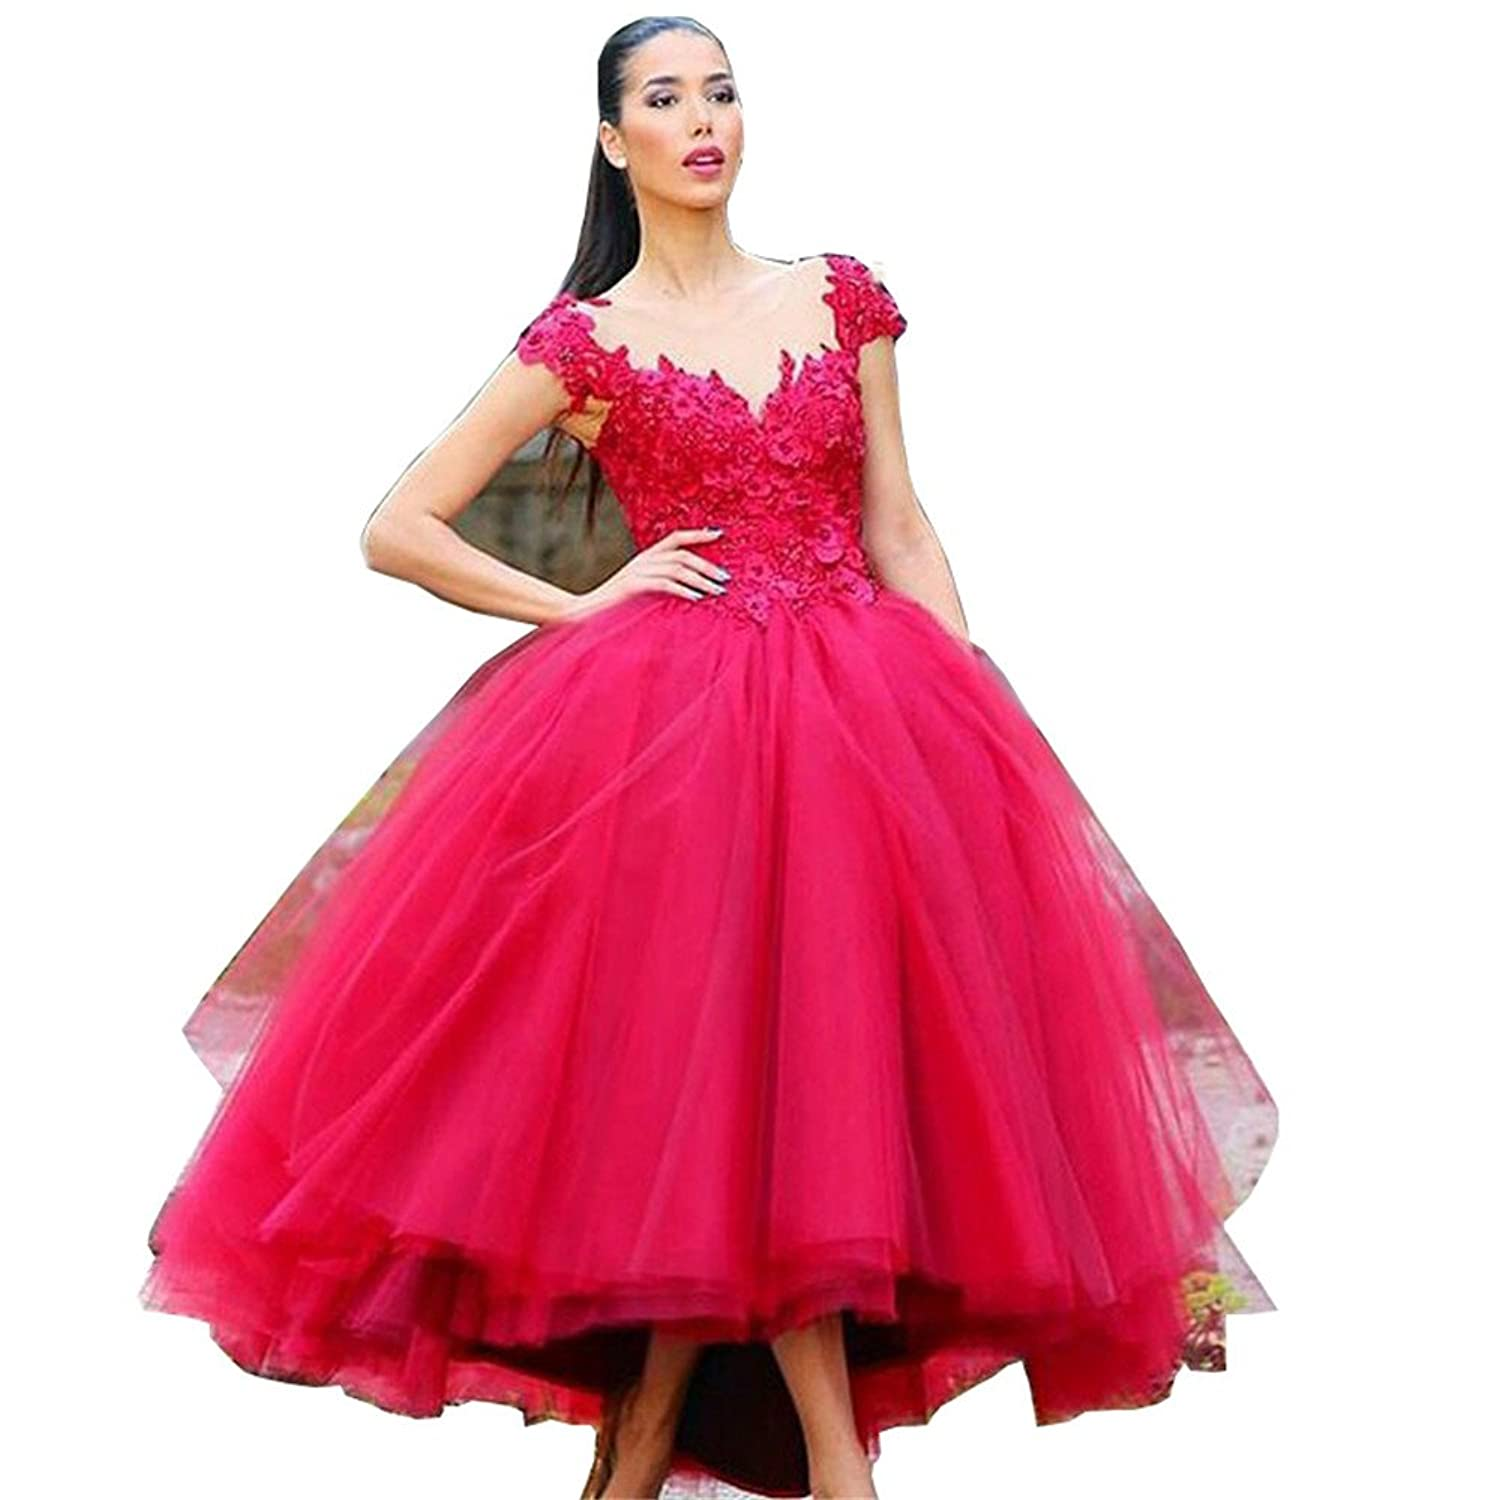 Amazon.com: CCBubble Tea Length Prom Dresses 2017 Appliques Red Ball Gown Prom Dress: Clothing